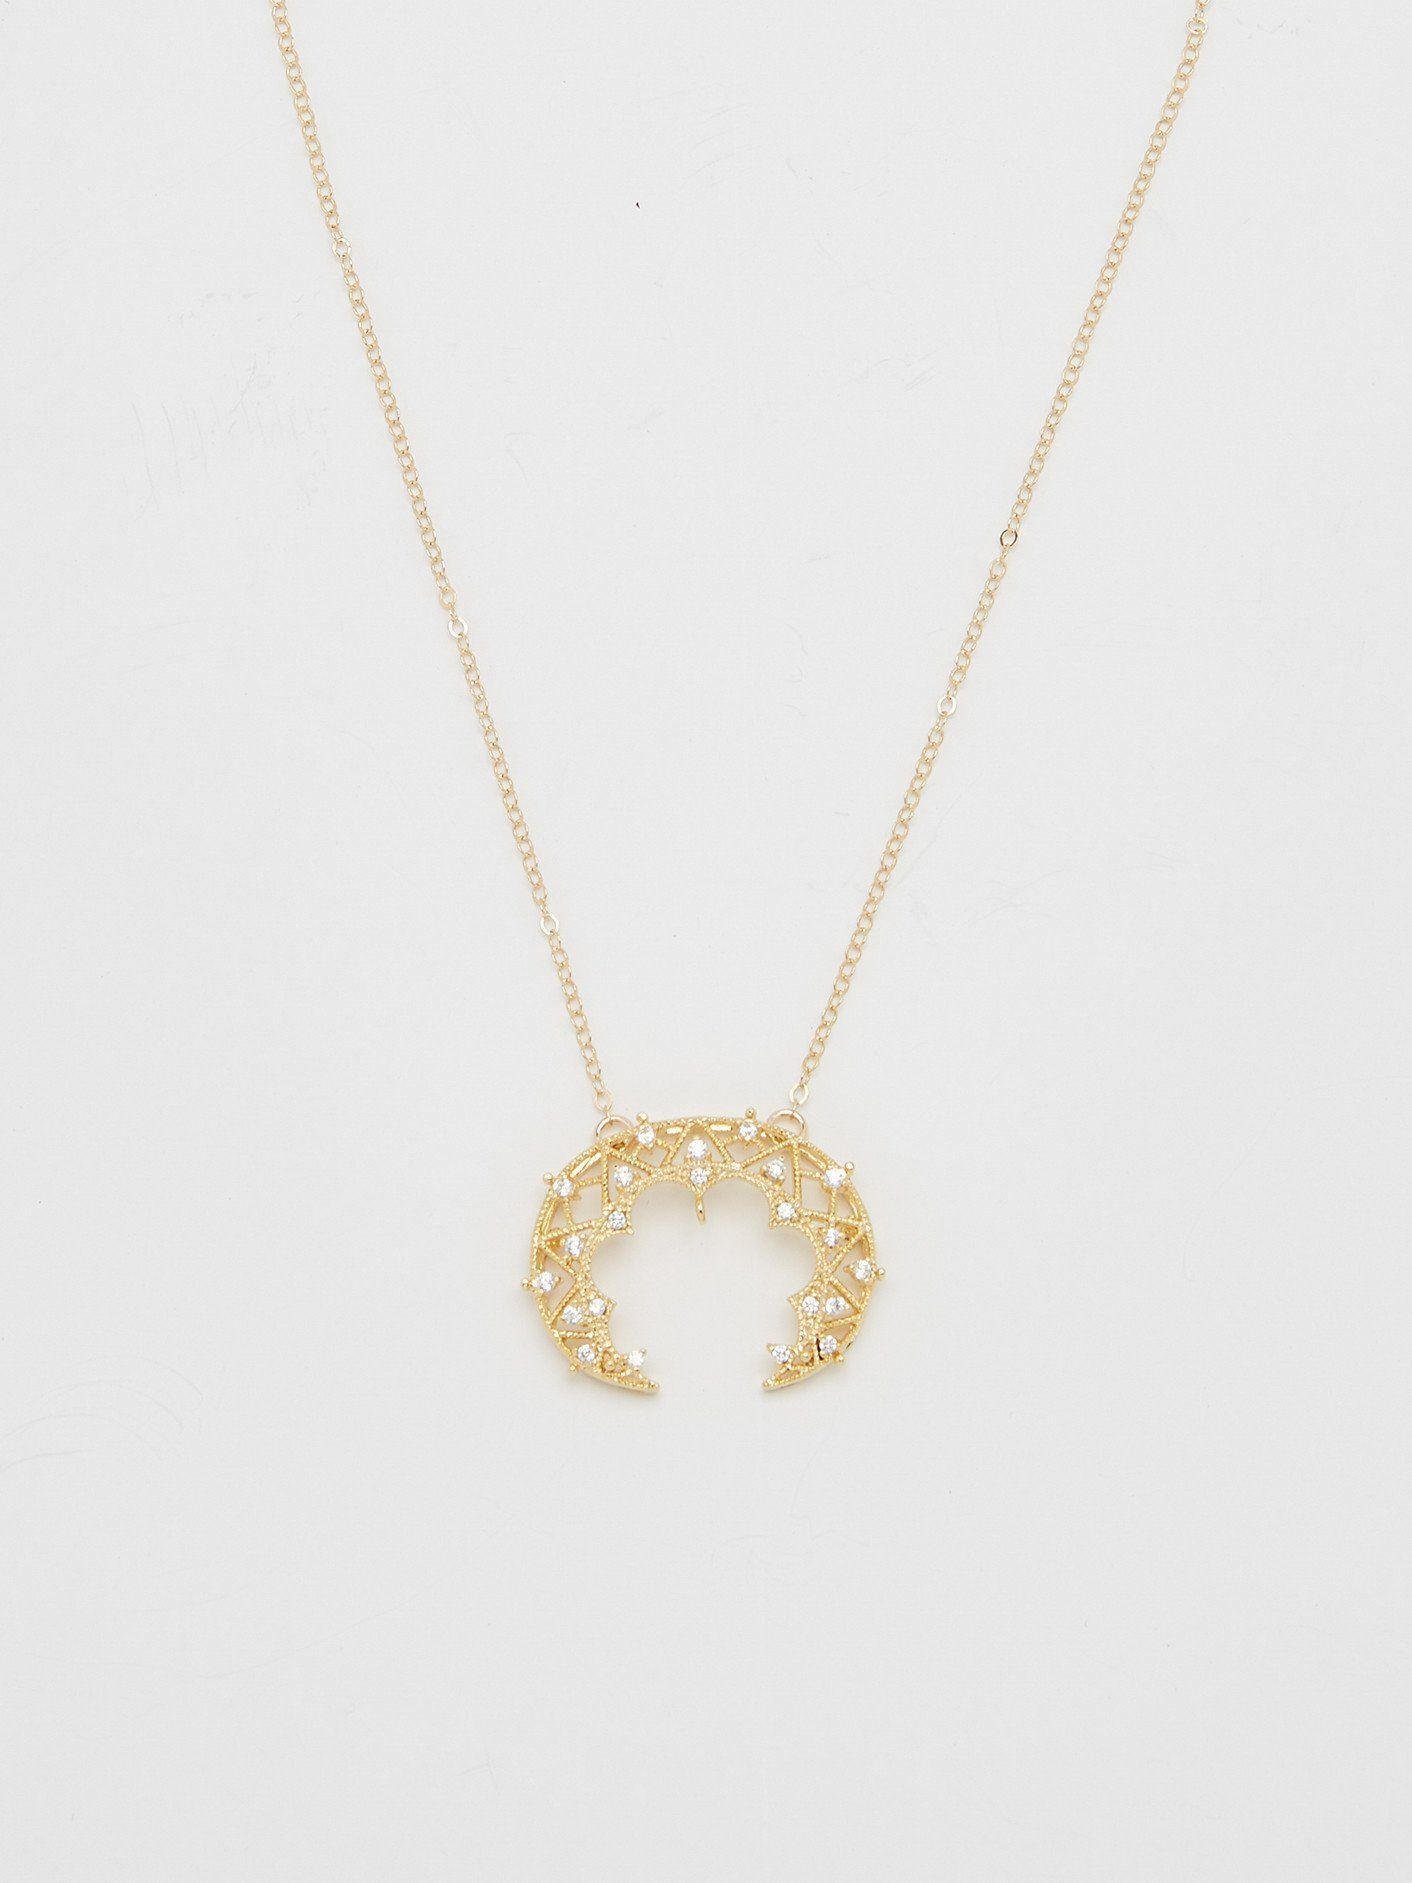 DH Long Necklace